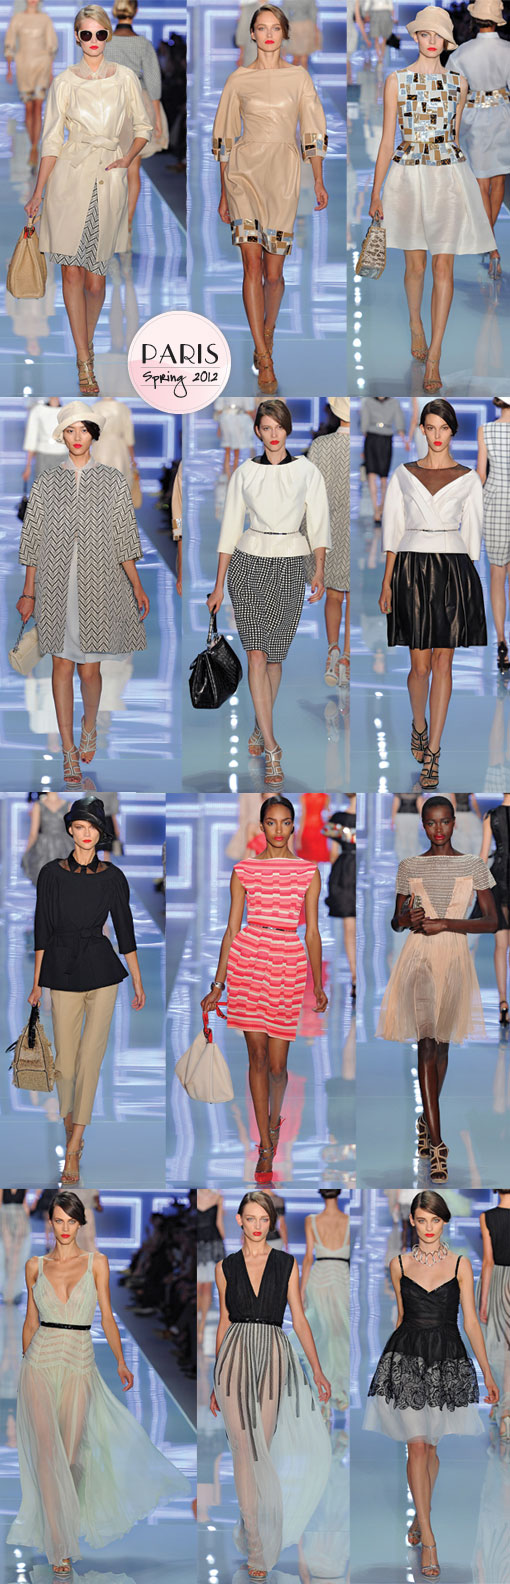 Christian Dior Spring 2012: The Pretty Is Back